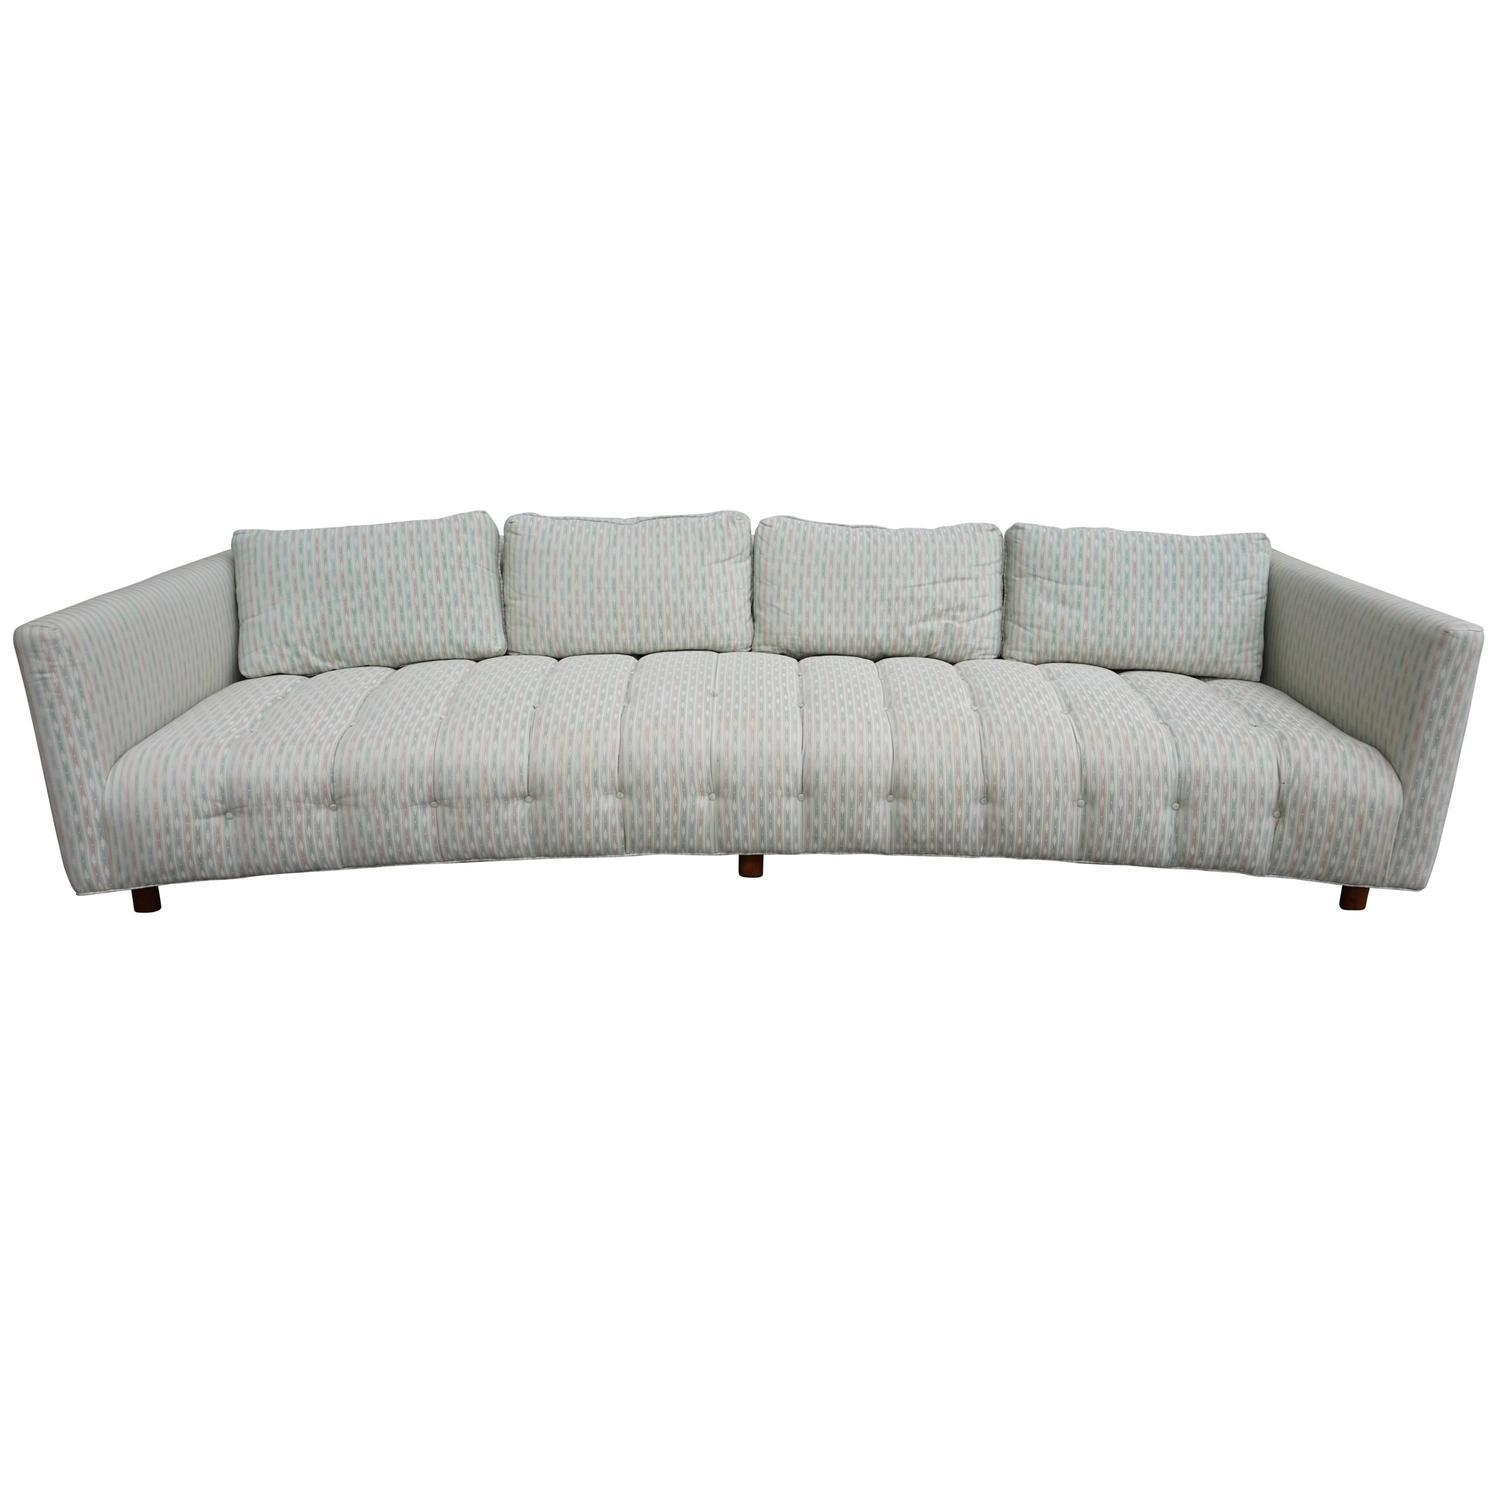 Long And Low Mid Century Sofa With Rounded Back At 1Stdibs Regarding Long Modern Sofas (View 17 of 20)